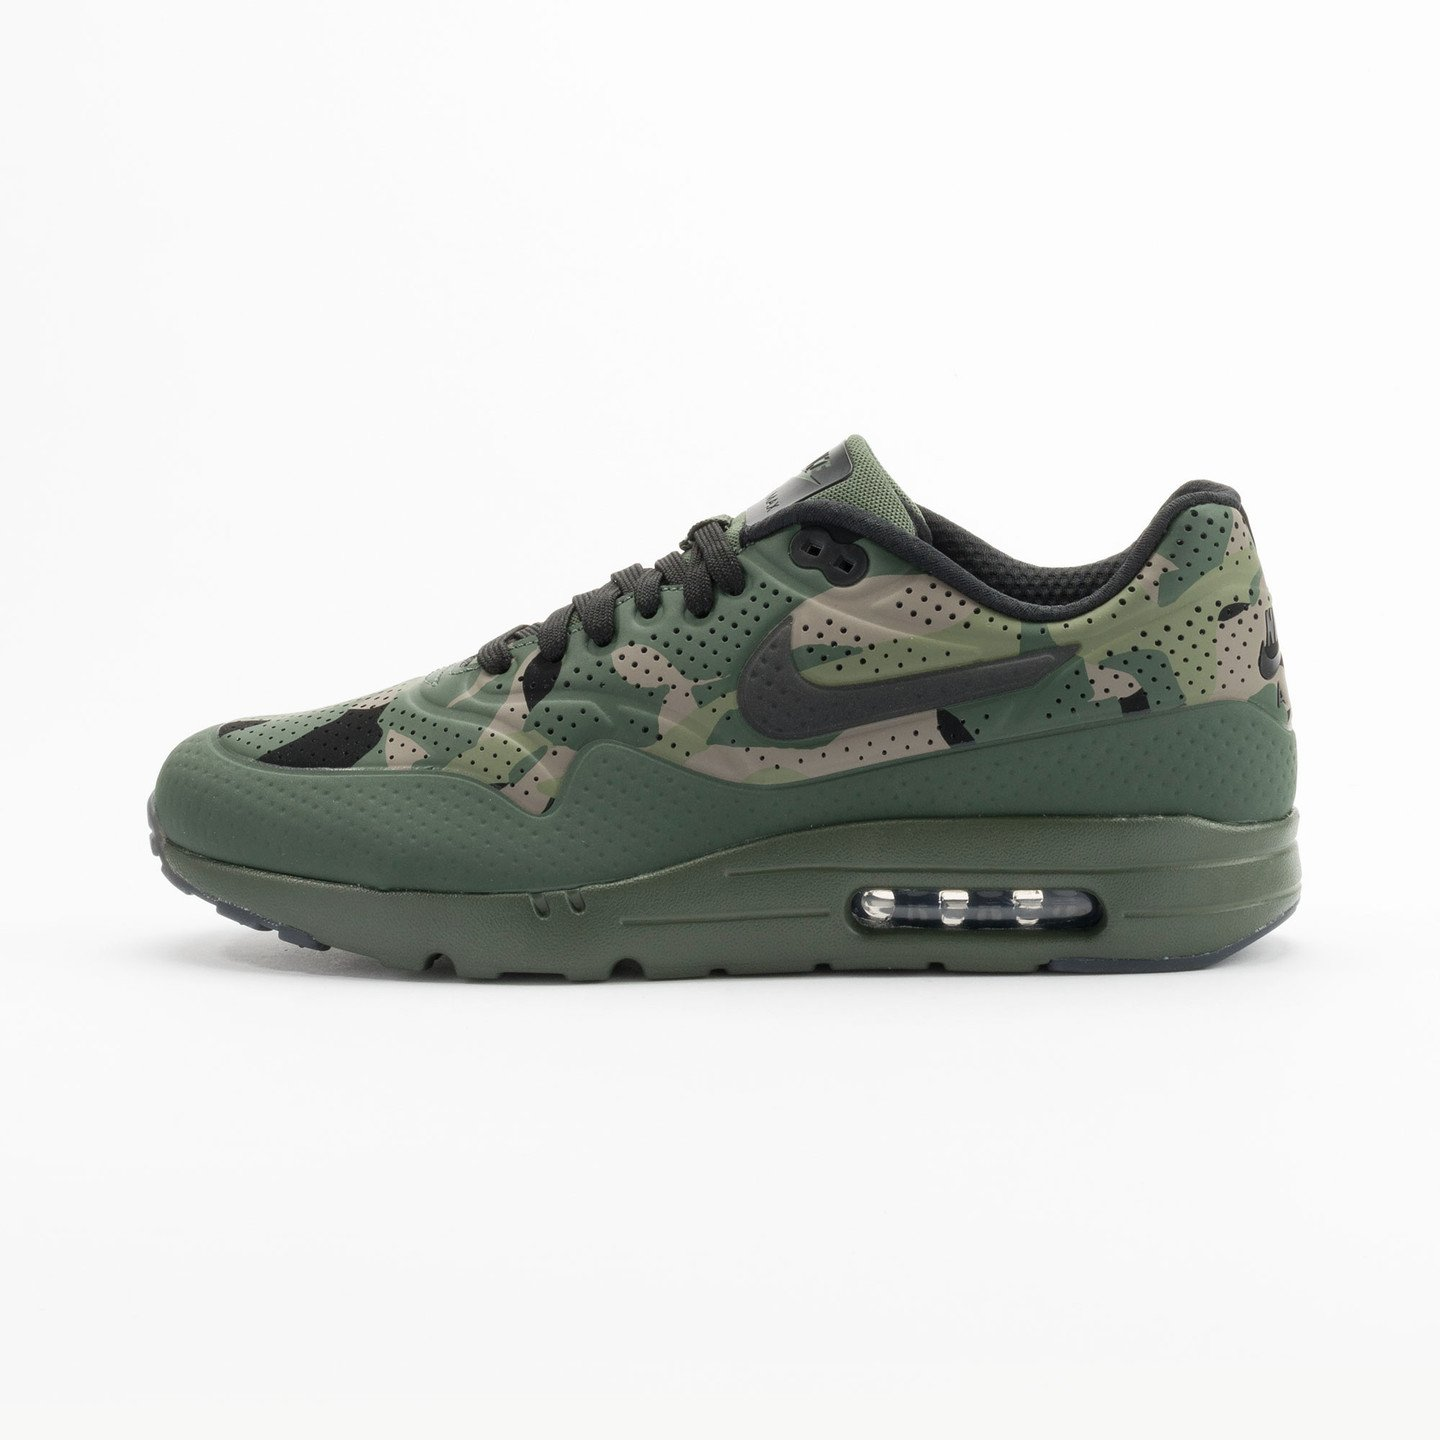 Nike Air Max 1 Ultra Moire Print Camouflage / Carbon Green 806851-300-44